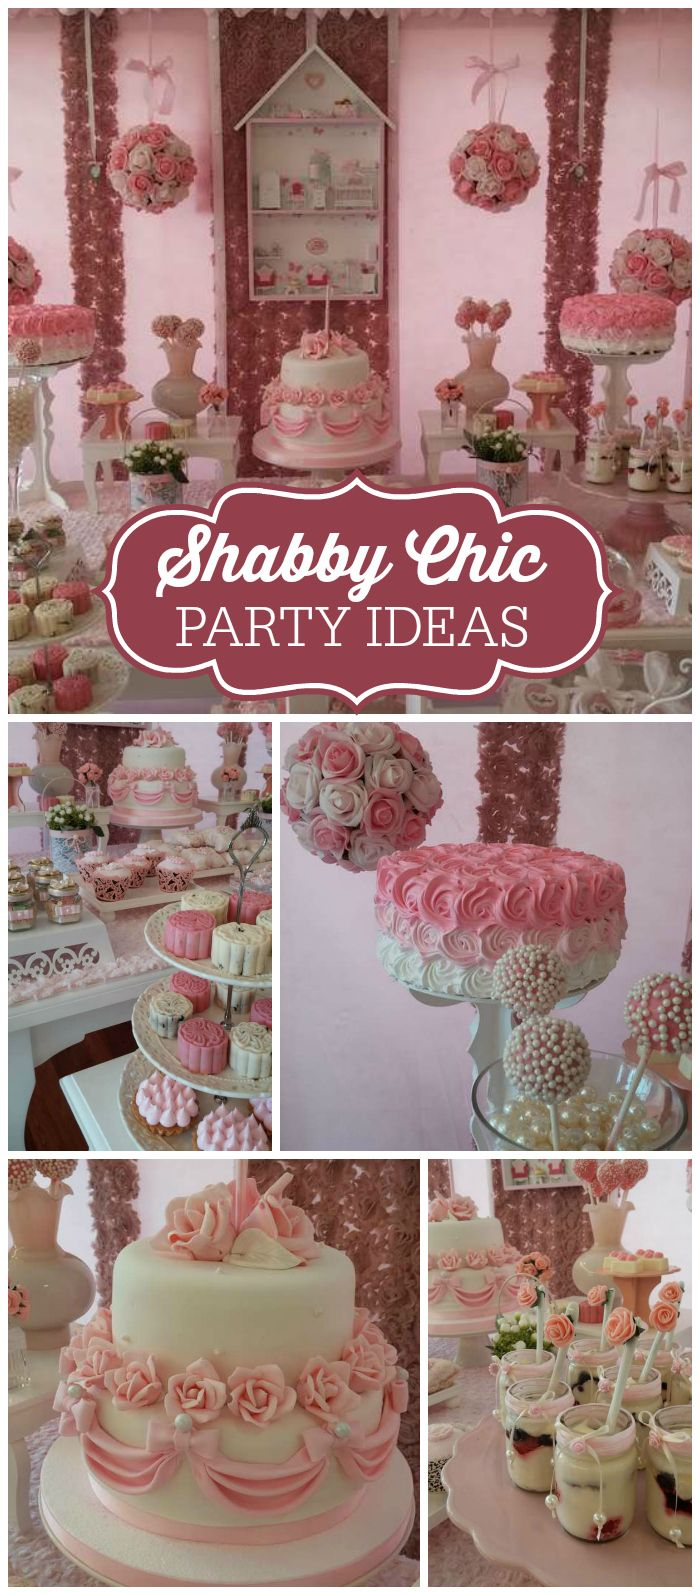 A shabby chic girl birthday party with pink and white roses for decorations and…